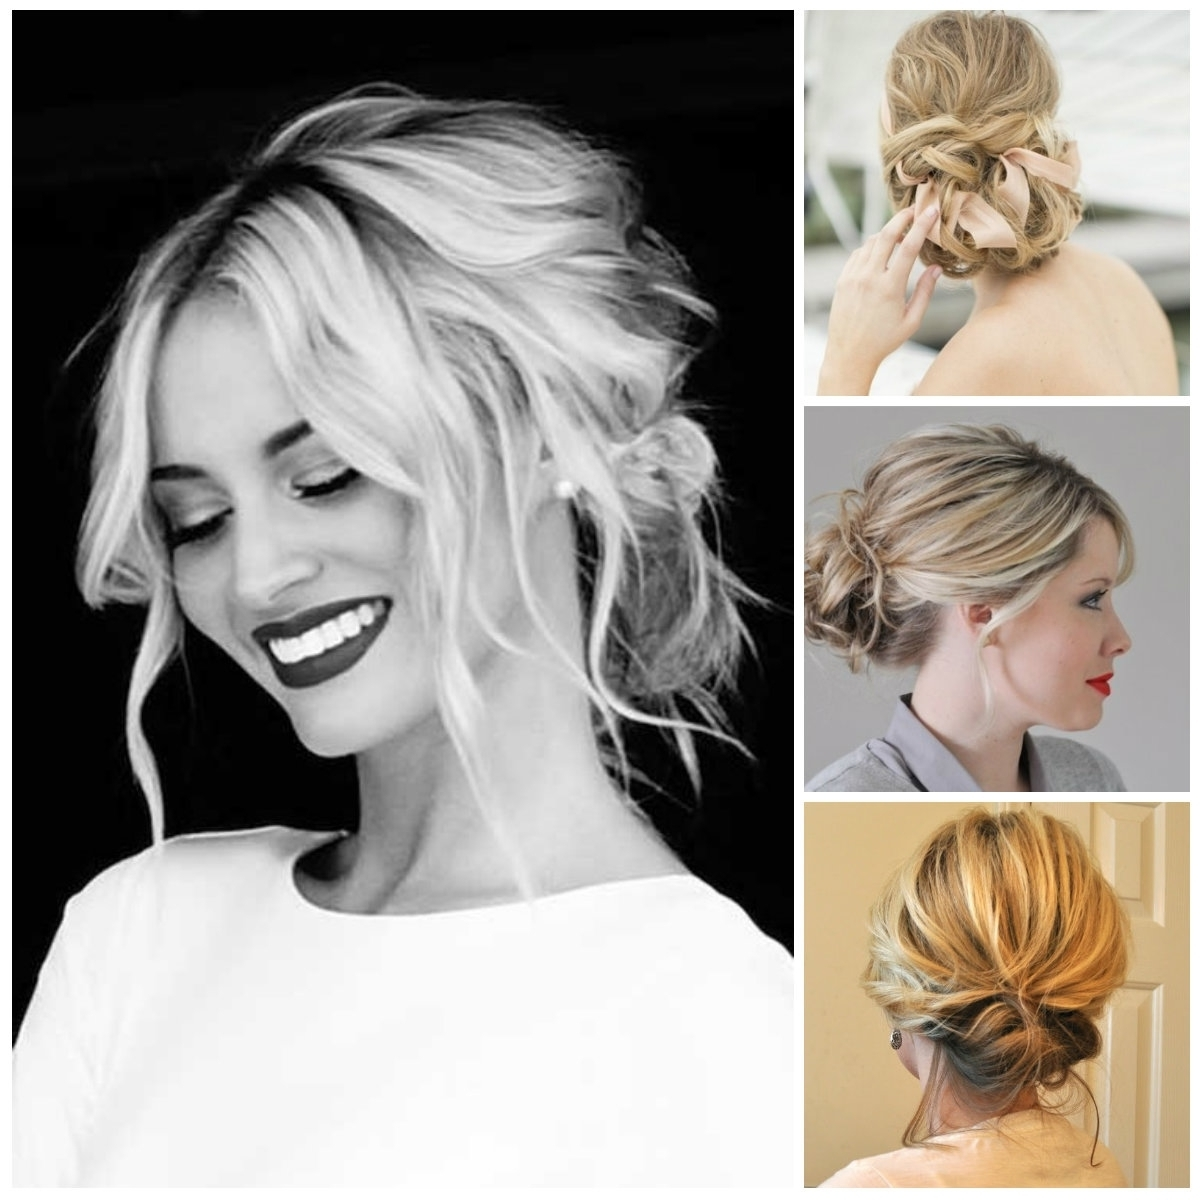 Updos For Medium Length Hair For Teenagers Updo Hairstyles Haircuts Intended For Teenage Updos For Long Hair (View 15 of 15)